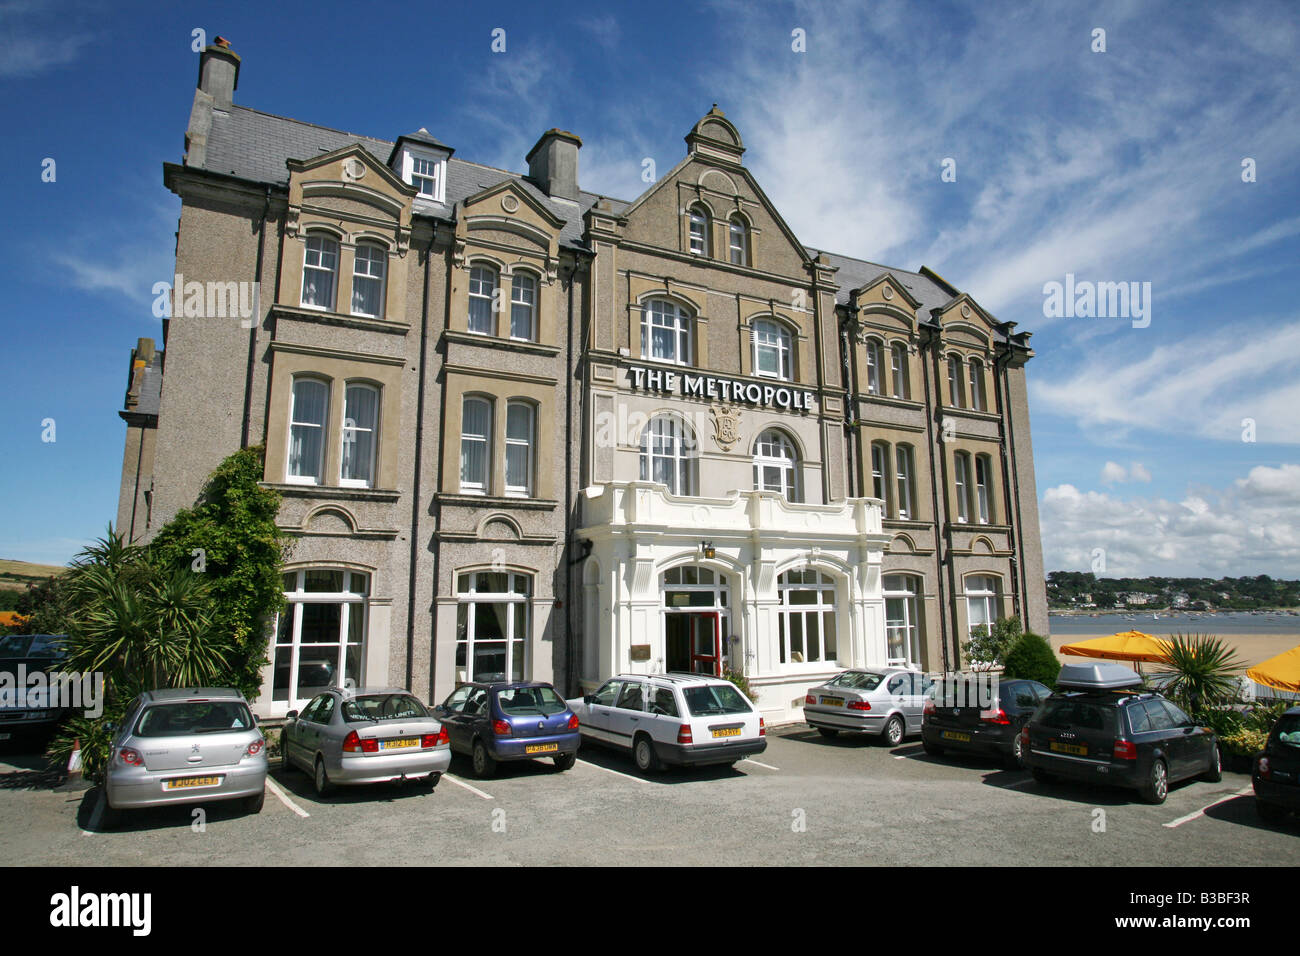 The Metropole Hotel, Padstow, Cornwall - Stock Image